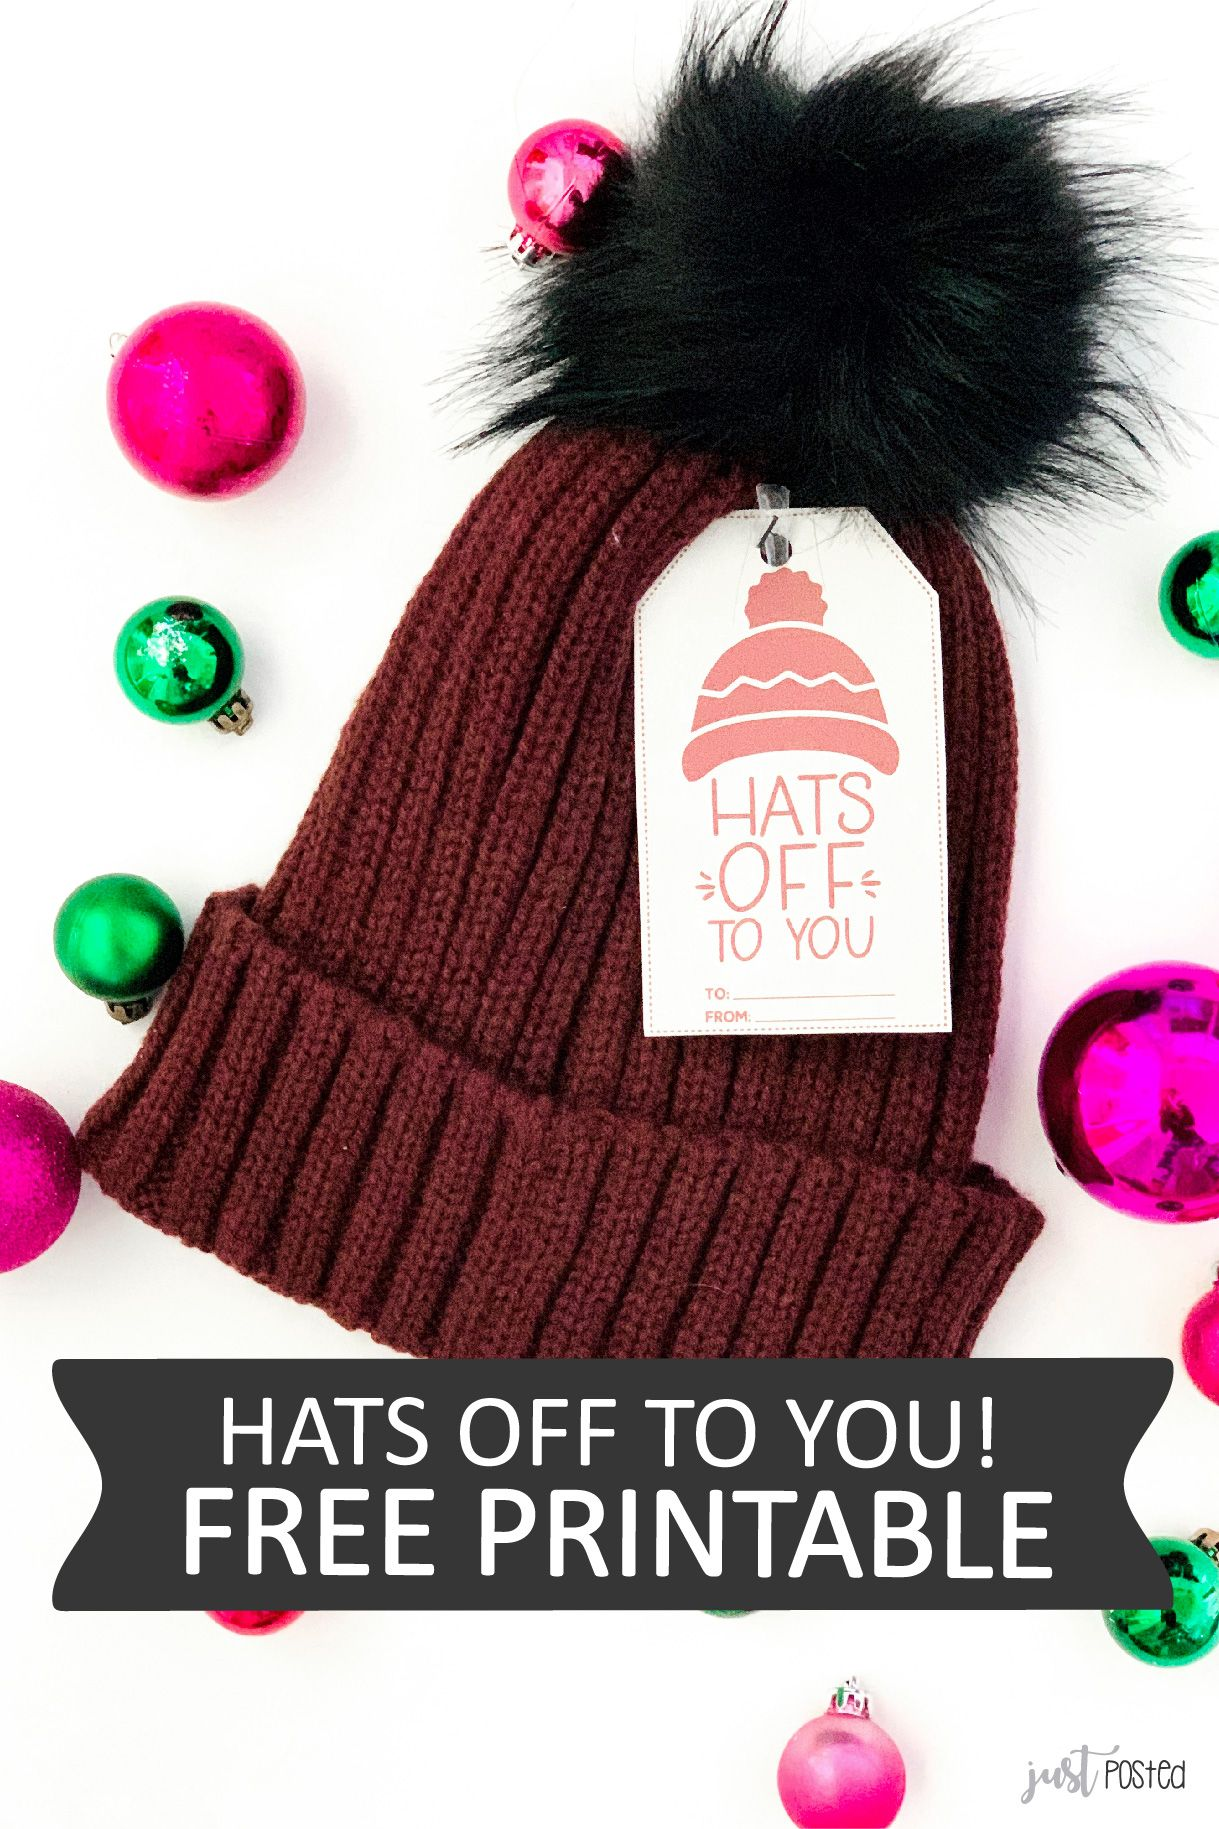 Hats Off To You Just Attach Your Favorite Cozy Hat For This Gift